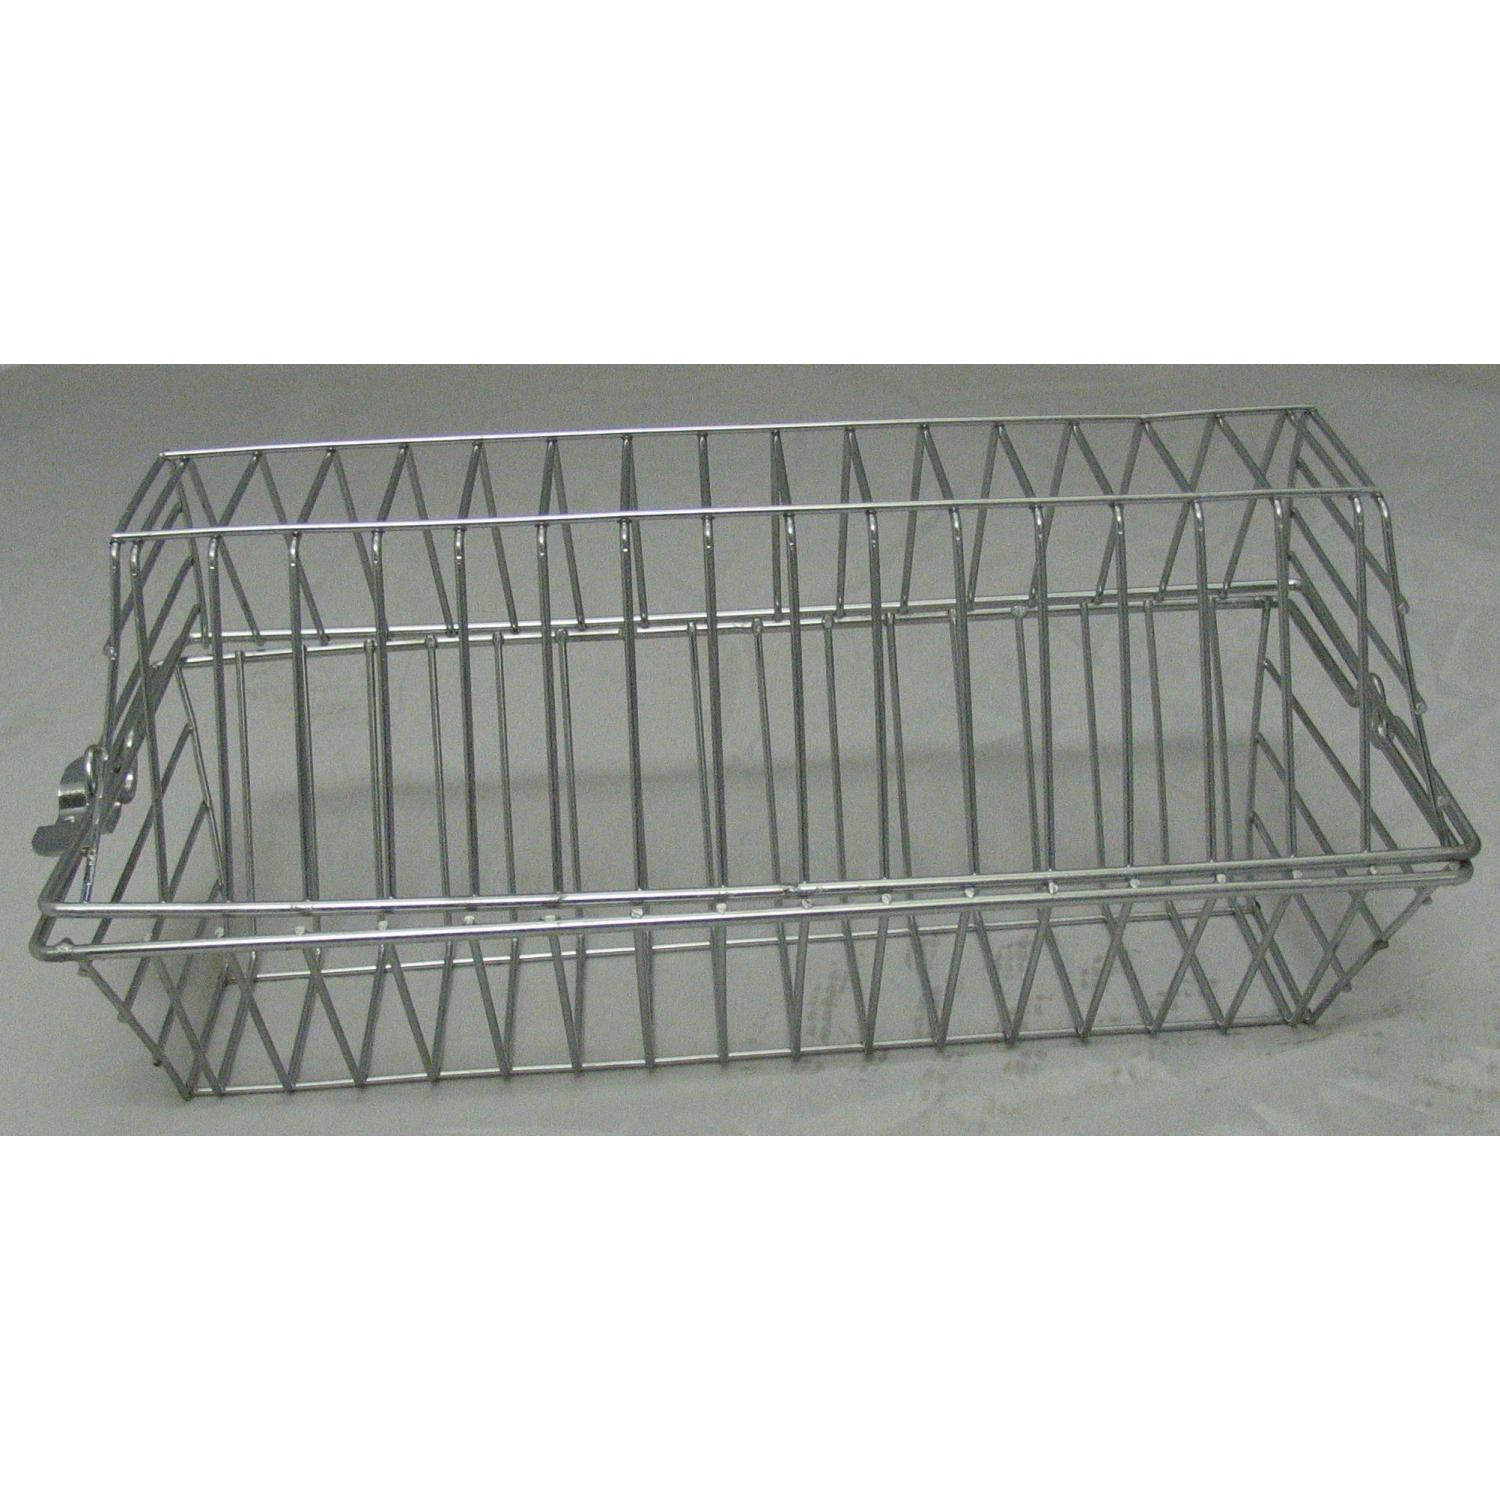 Deluxe Chicken and Rib Tumble Basket